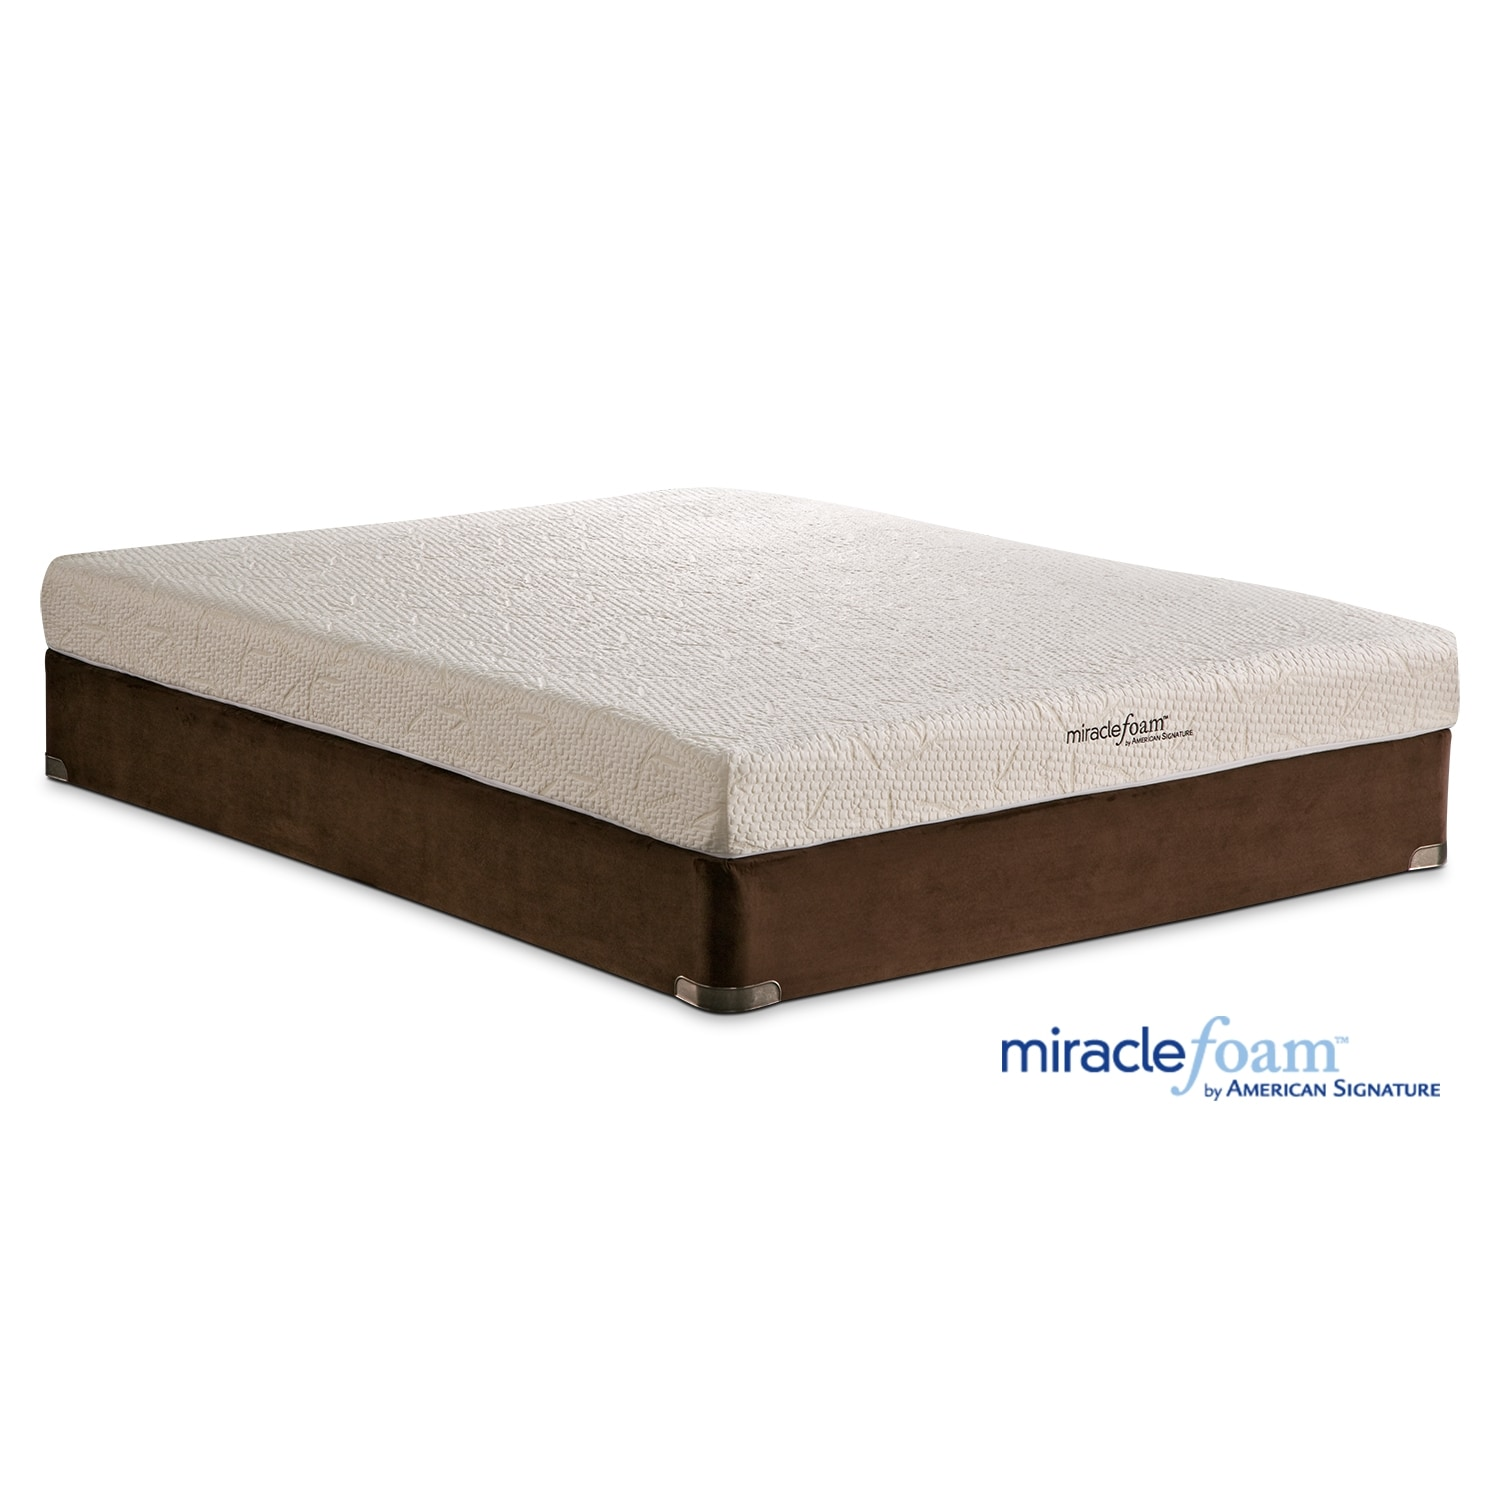 Mattresses and Bedding - Miracle Foam Renew II Full Mattress & Foundation Set